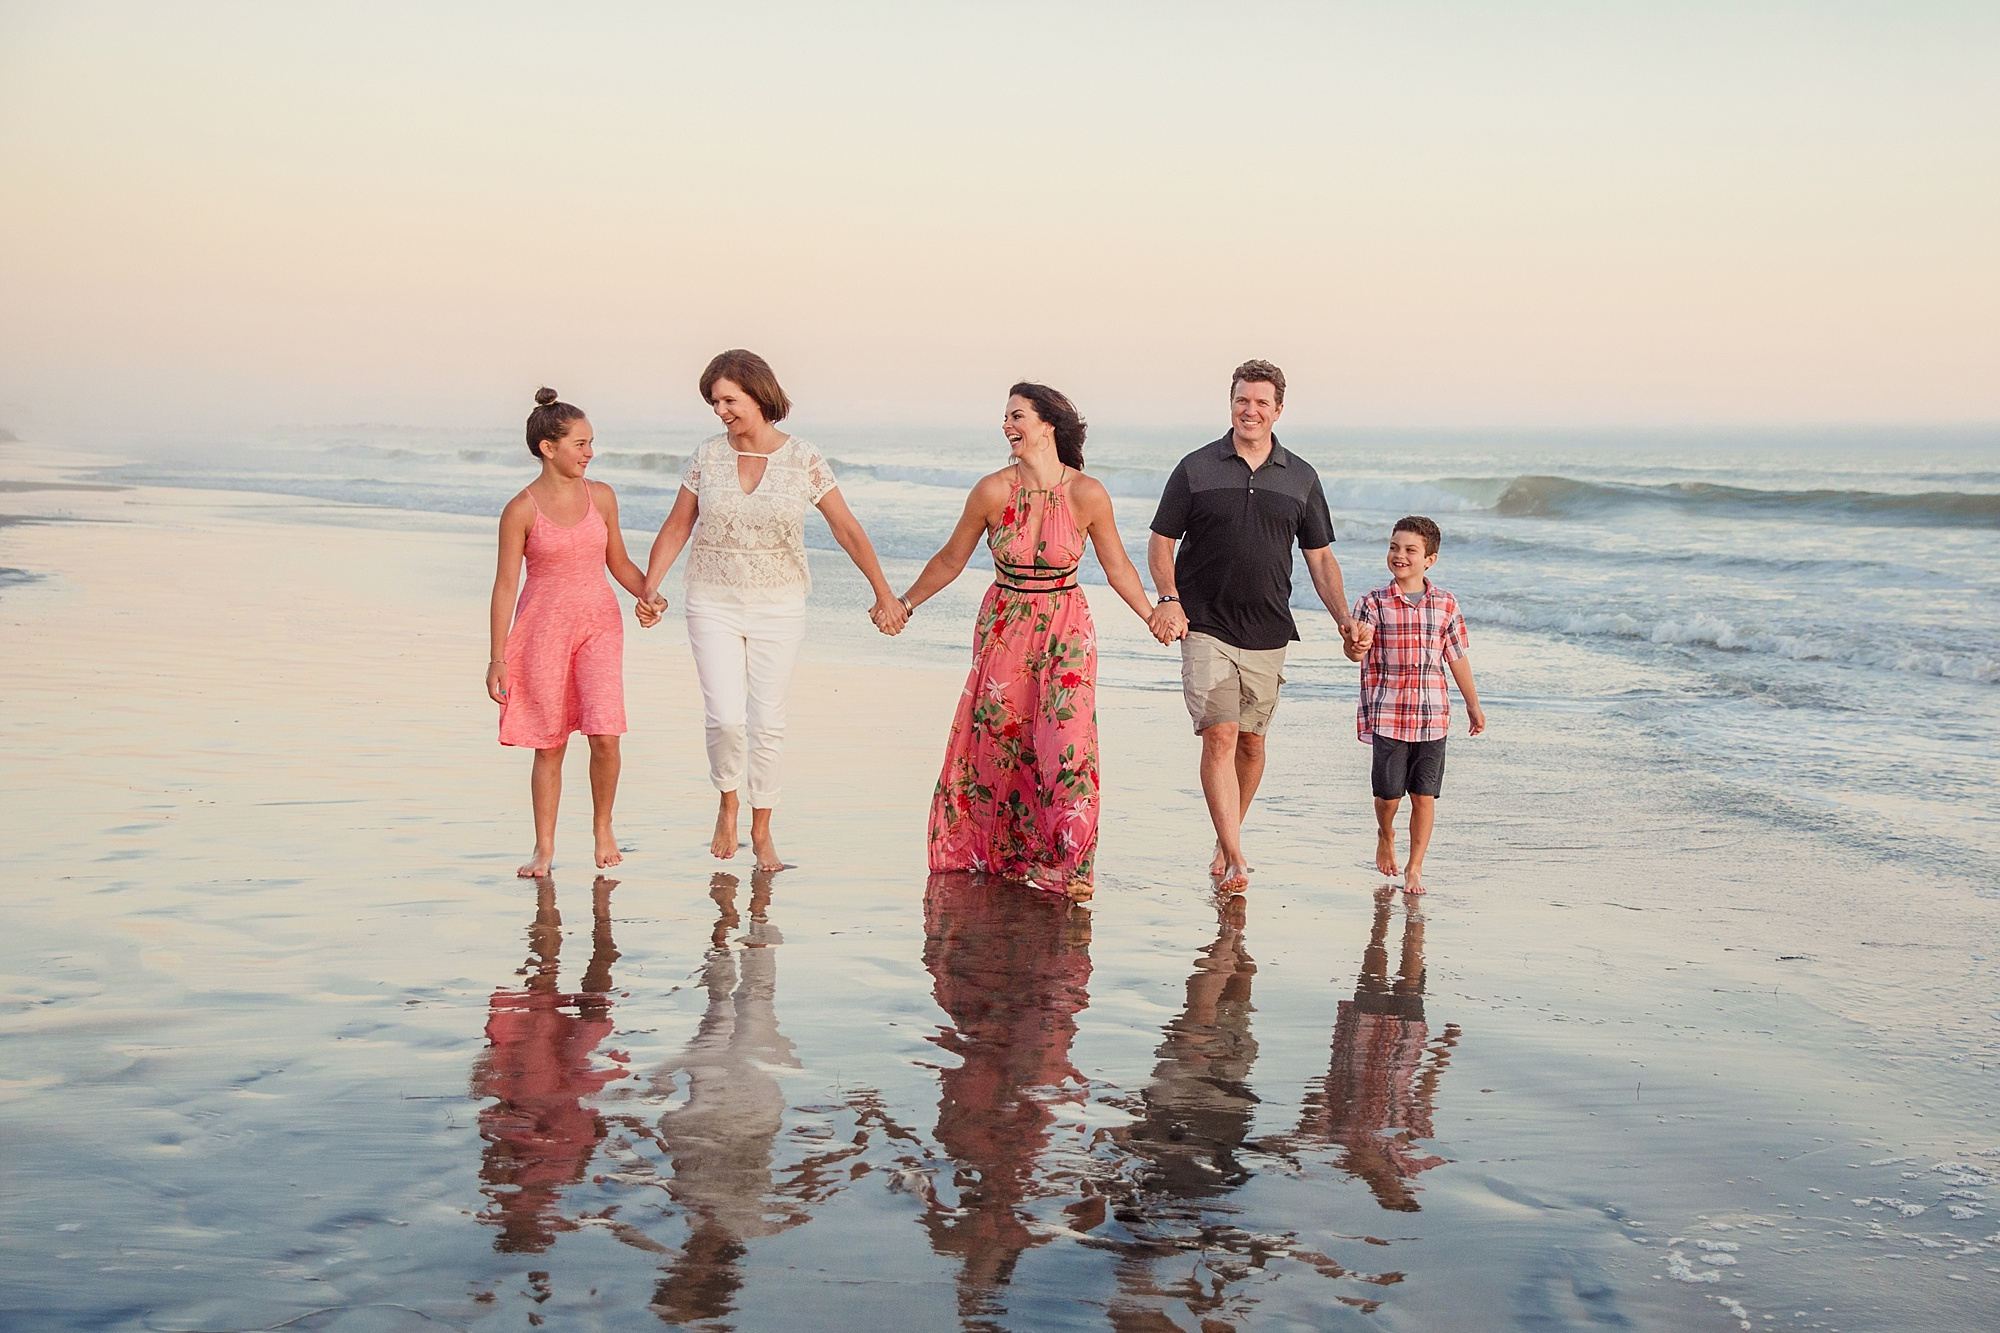 San Diego Photographer | San Diego Beach Photos